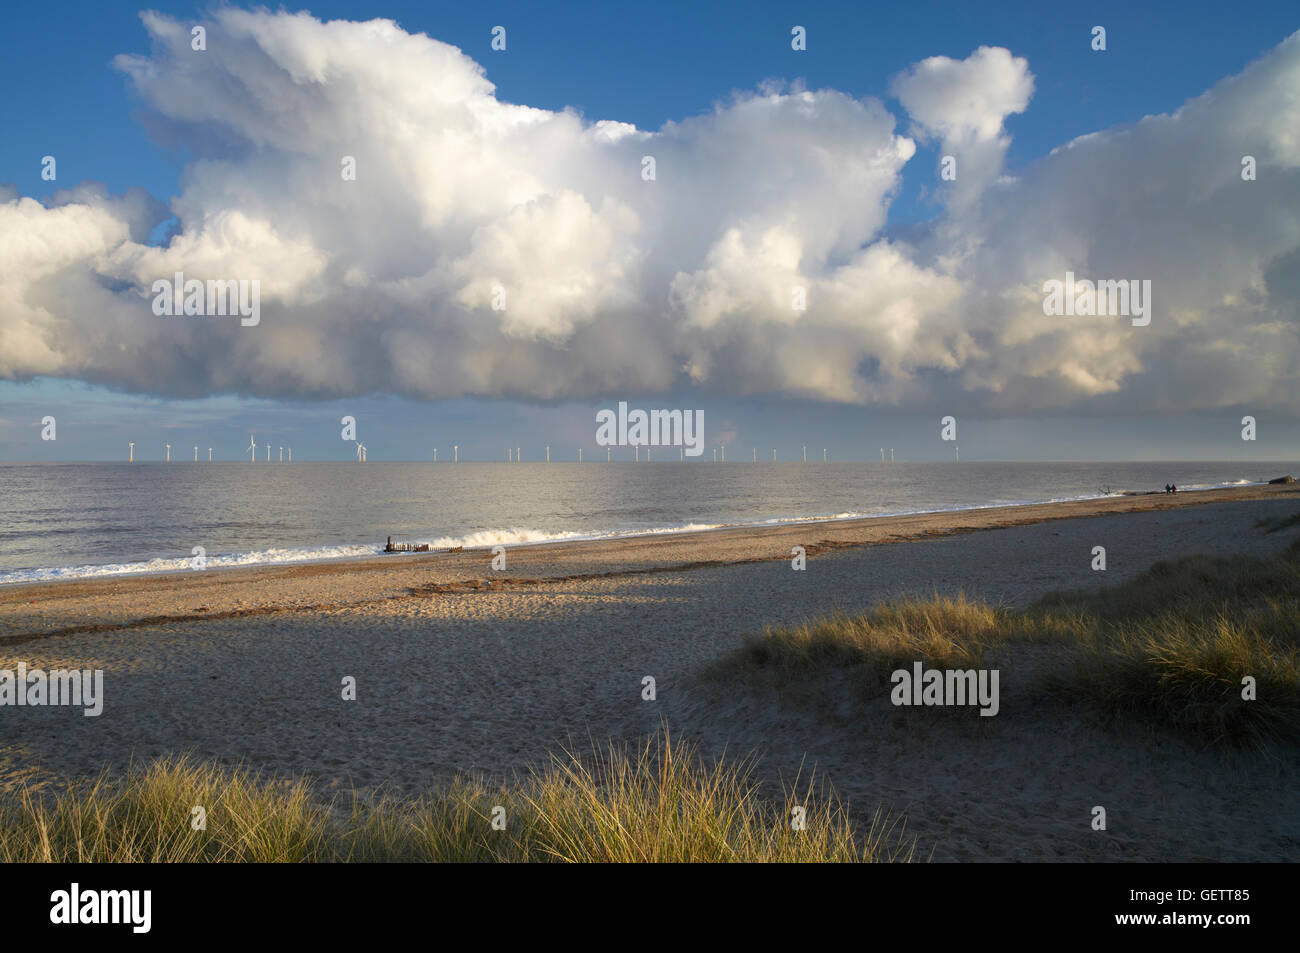 A view of the beach at Caister on Sea. Stock Photo